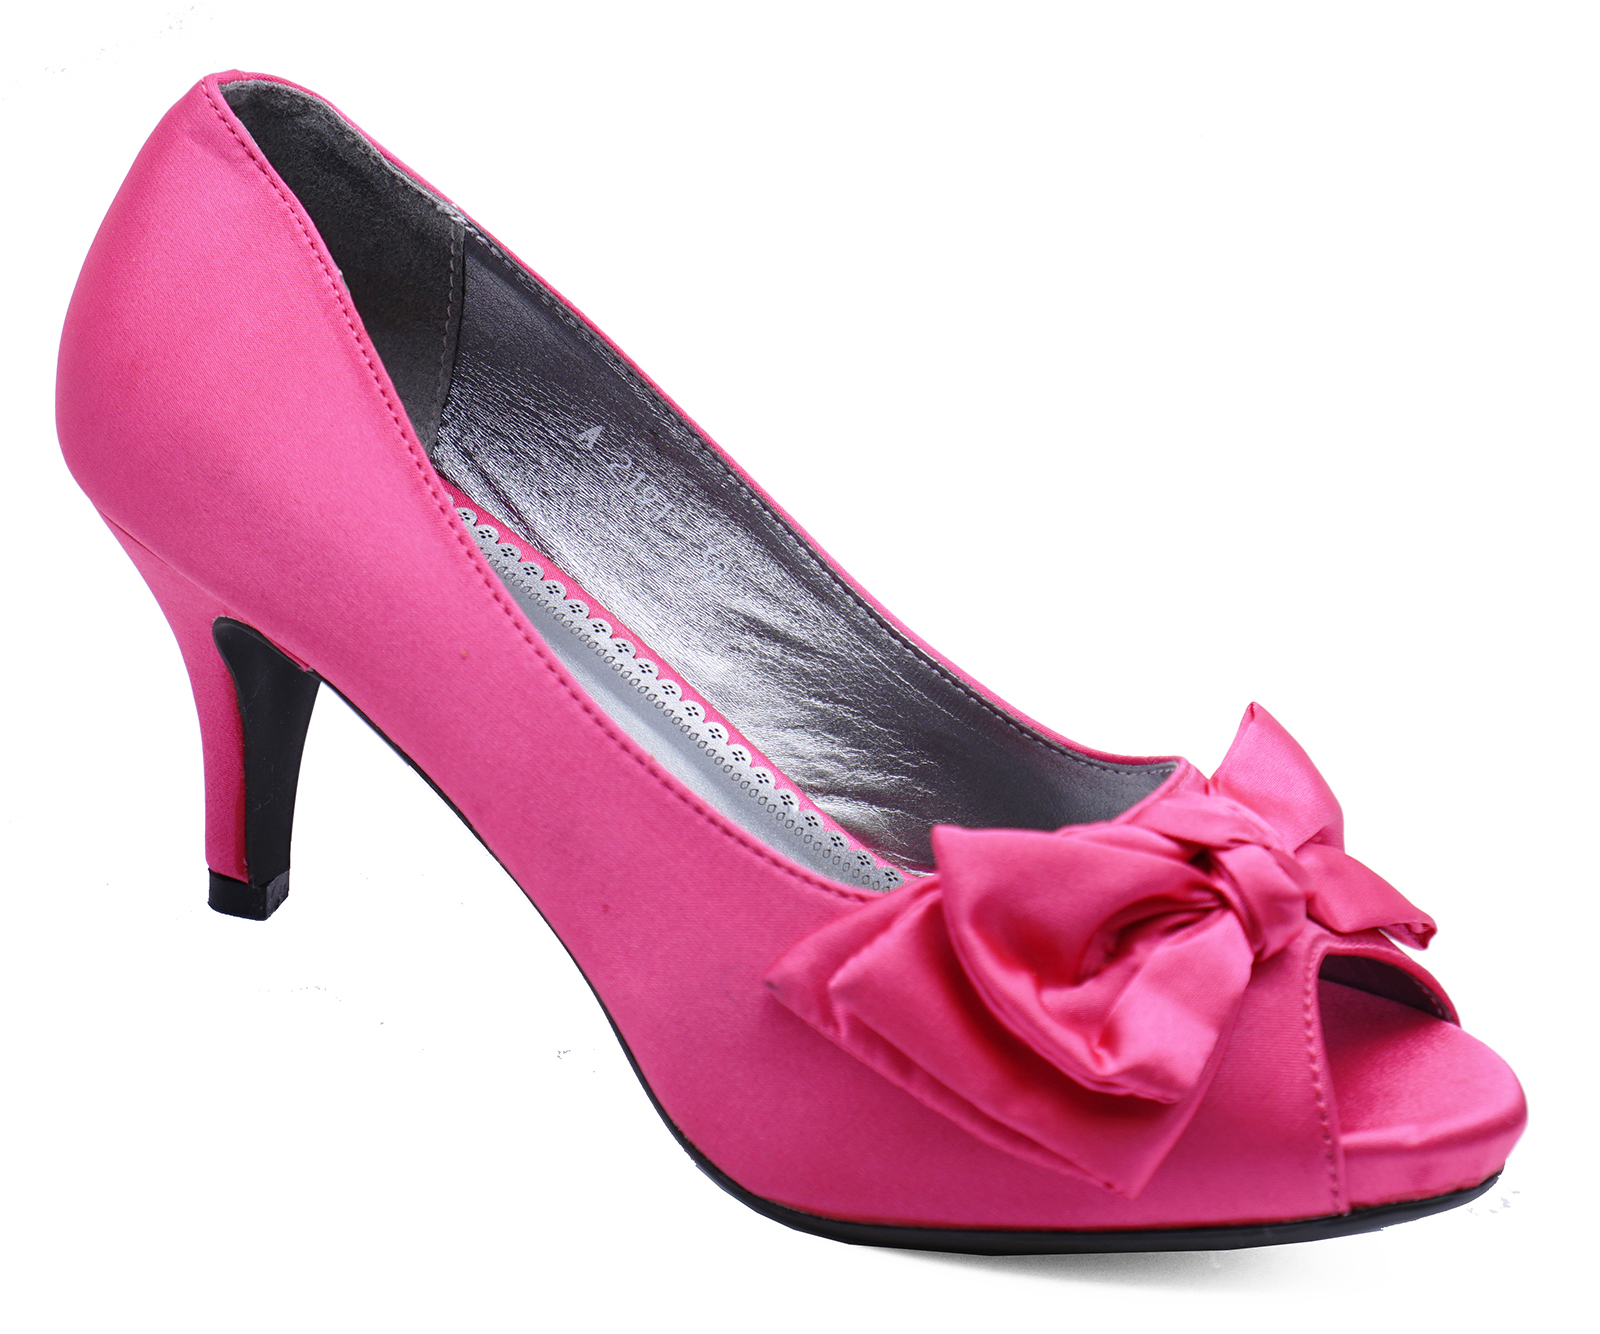 a12b3d9958ce Sentinel FUSHIA PINK SATIN PEEP-TOE WEDDING BRIDAL PROM BRIDESMAID COURT  SHOES SIZES 3-8